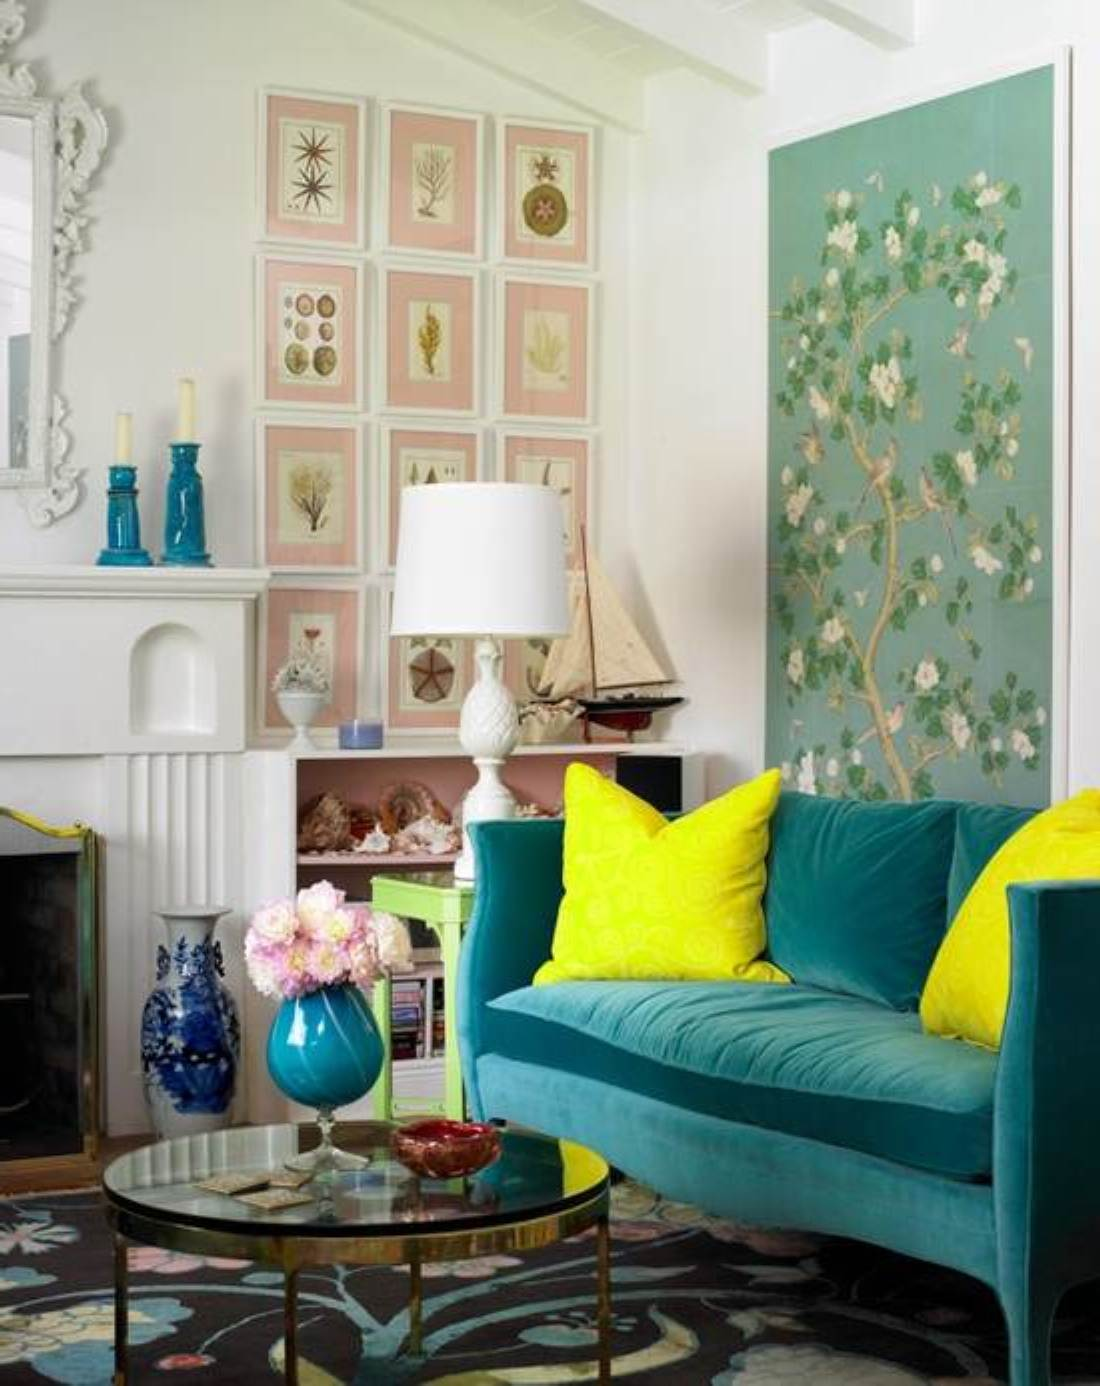 Some easy rules of small space decorating live diy ideas - Small space living room decorating ideas collection ...